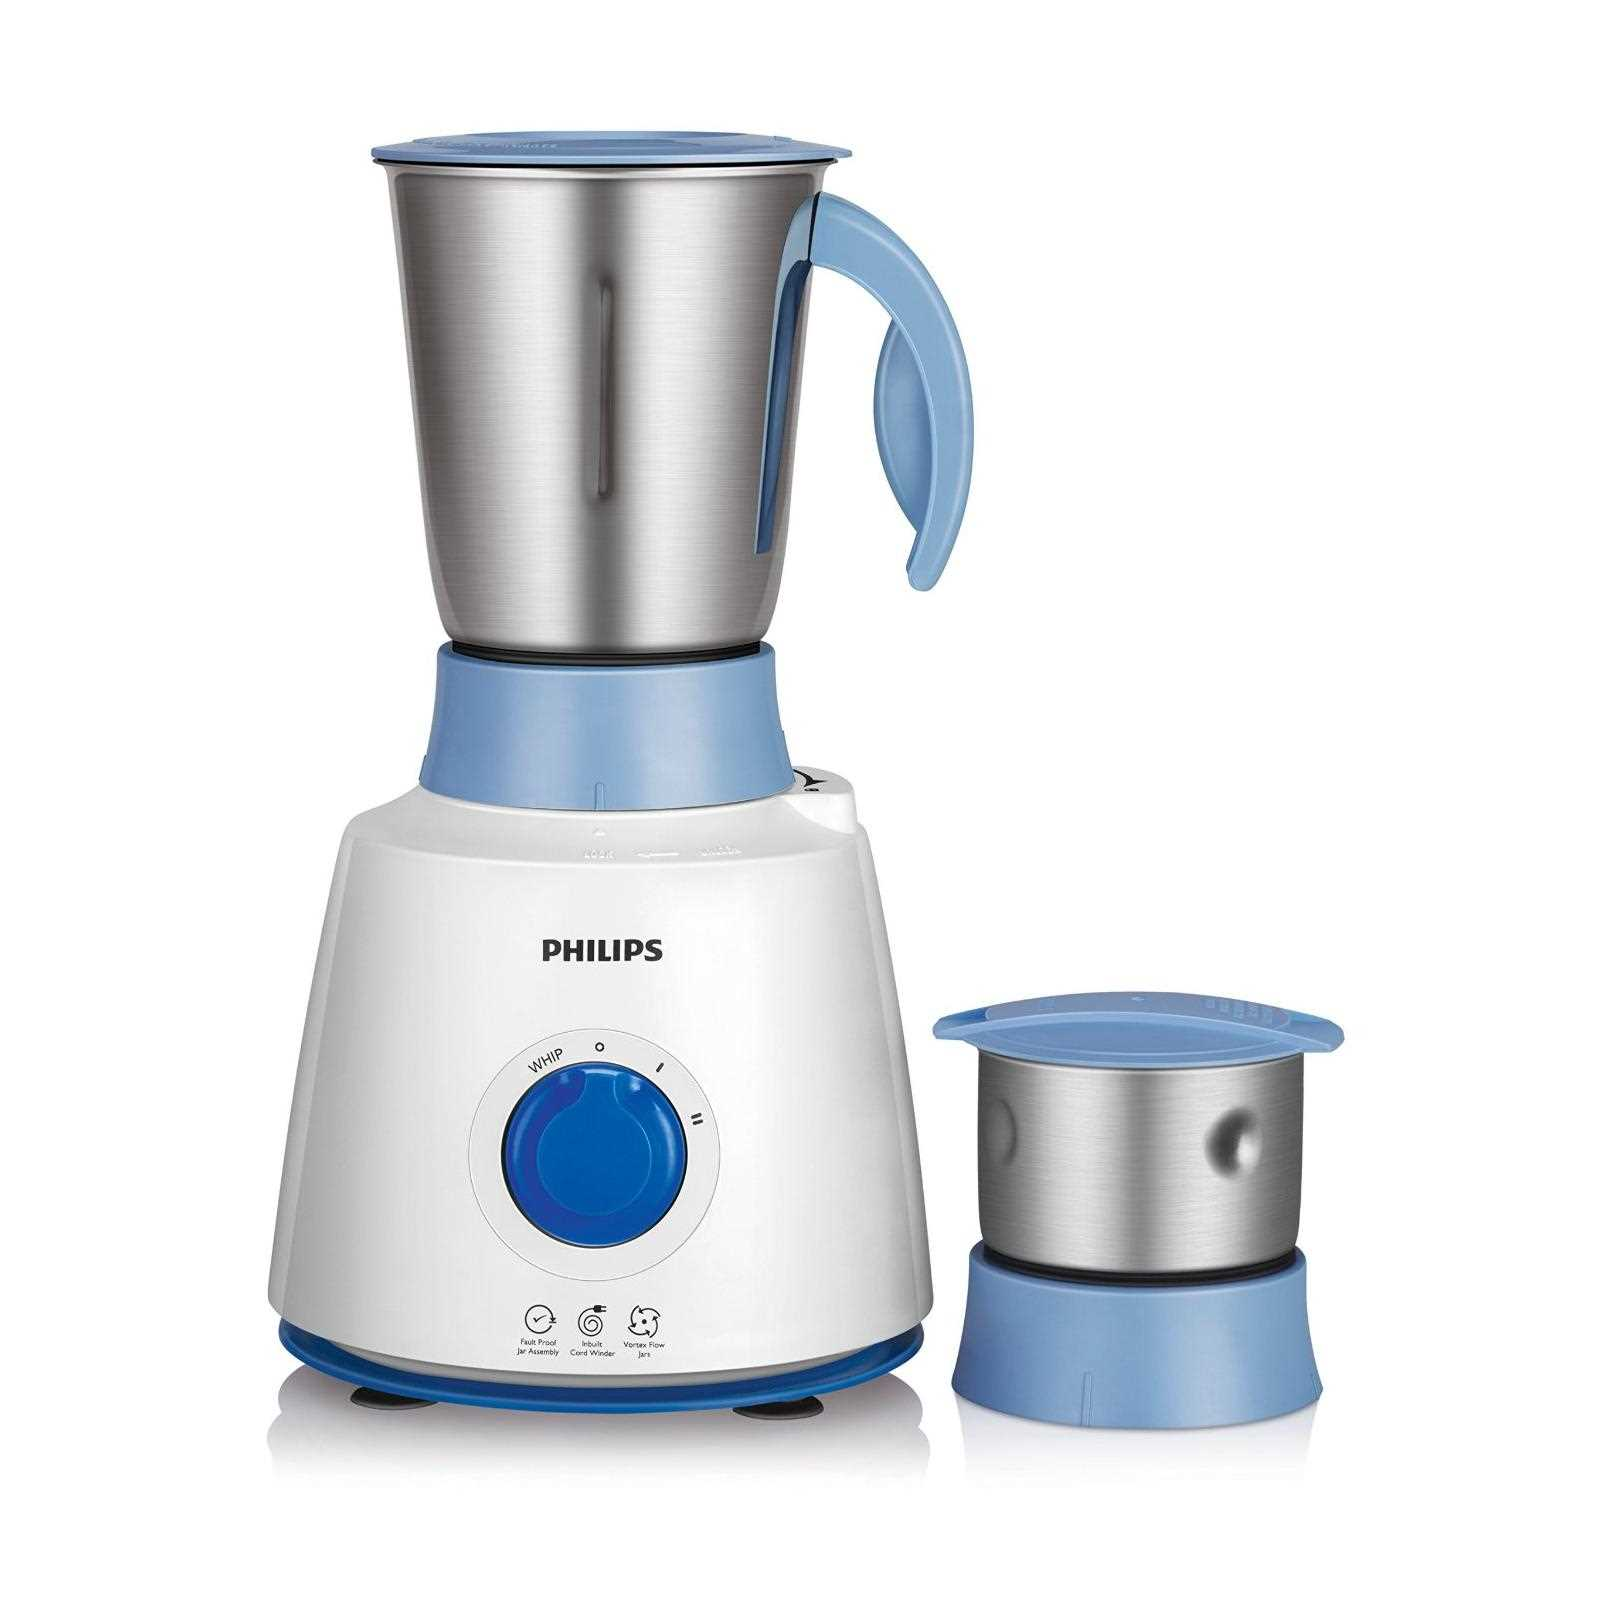 philips-hl7600-04-500-mixer-grinder